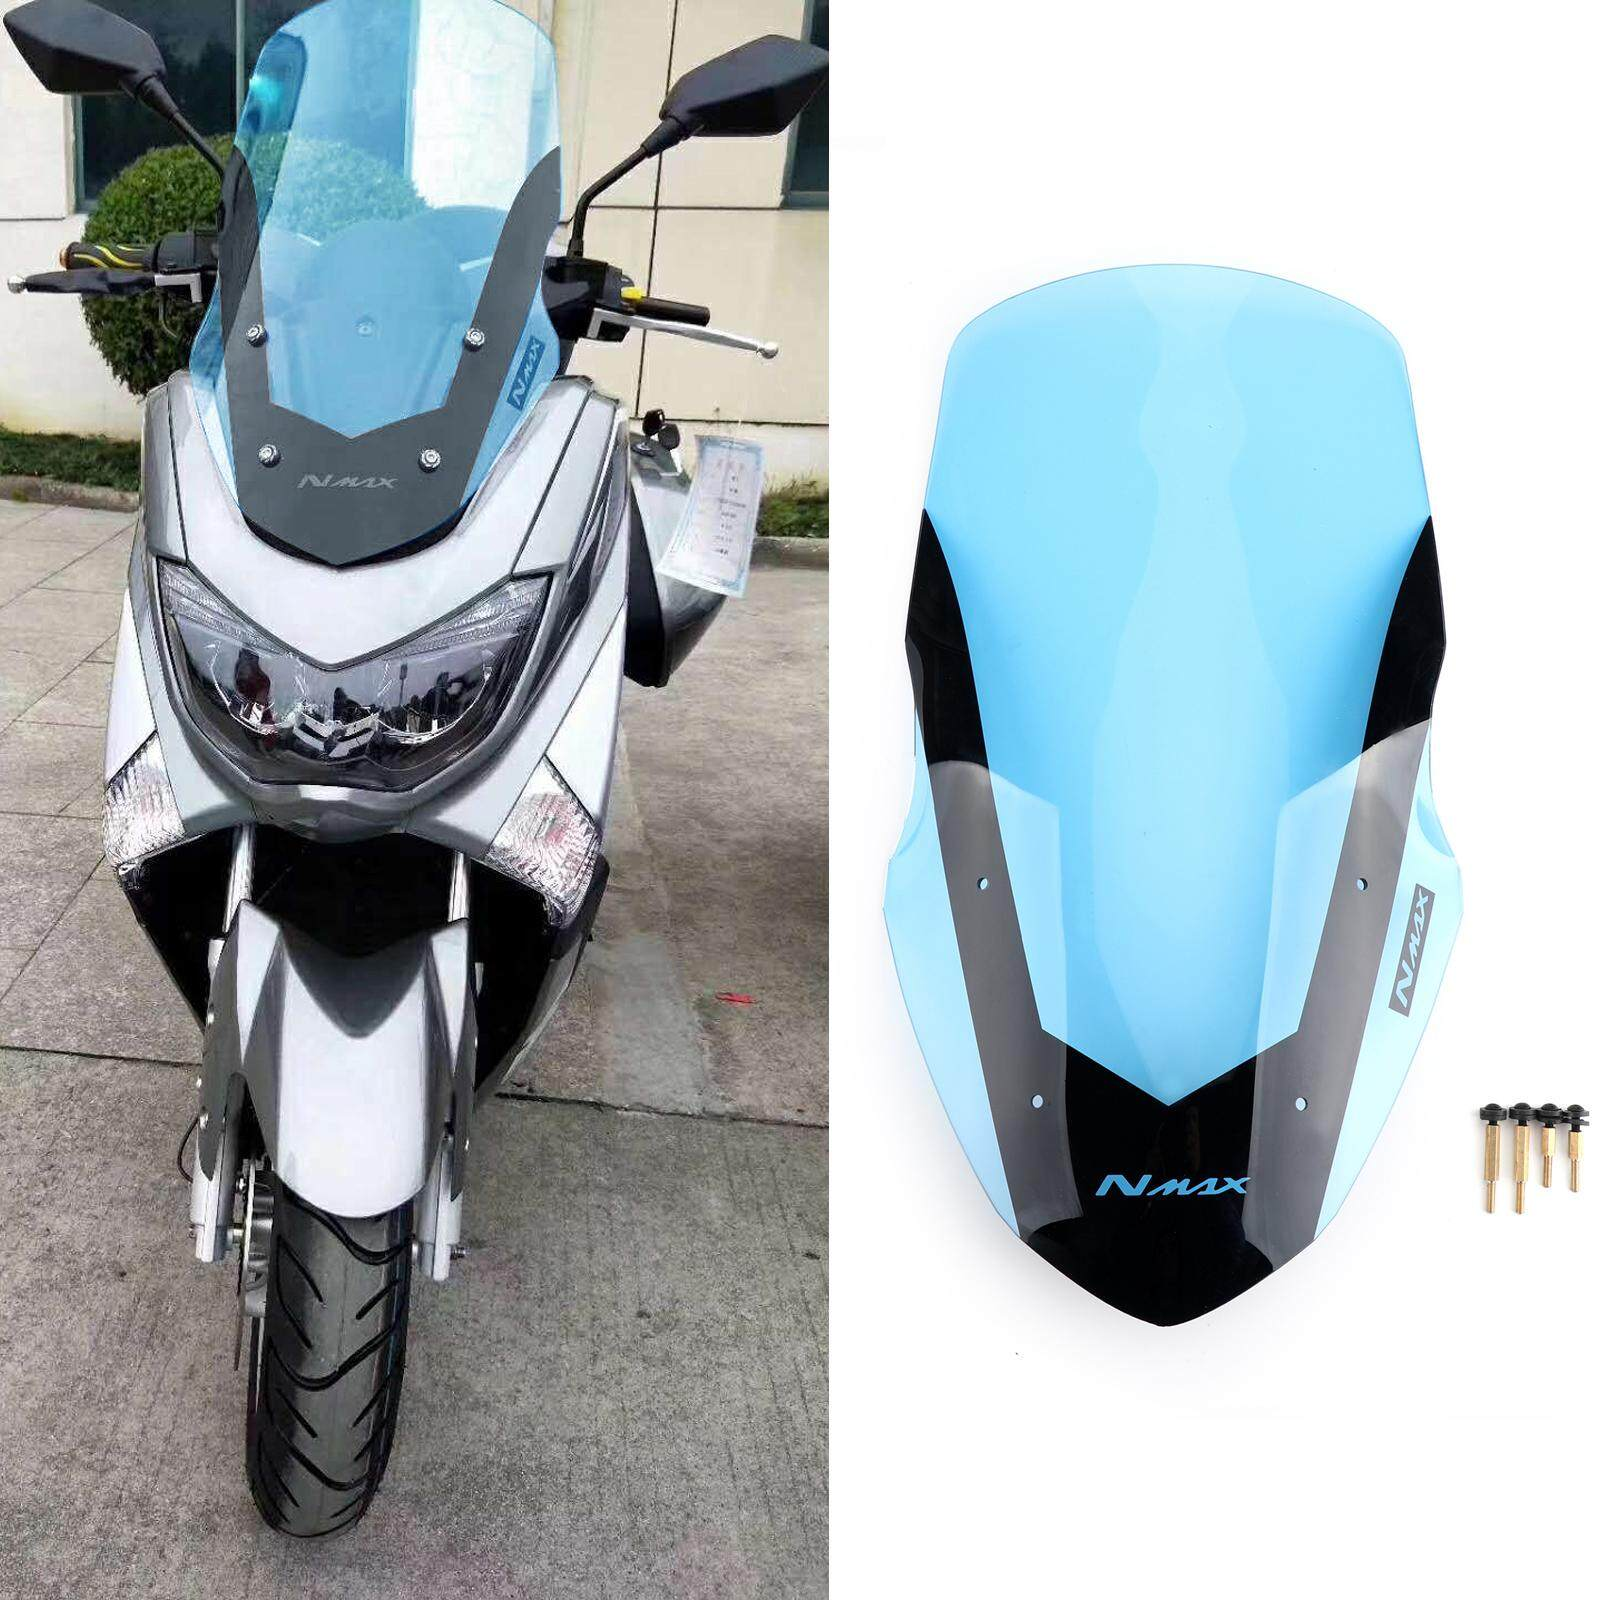 Areyourshop ABS Plastic Motorcycle Windshield WindScreen For Yamaha NMAX155  NMAX 155 2016-2018 Blue